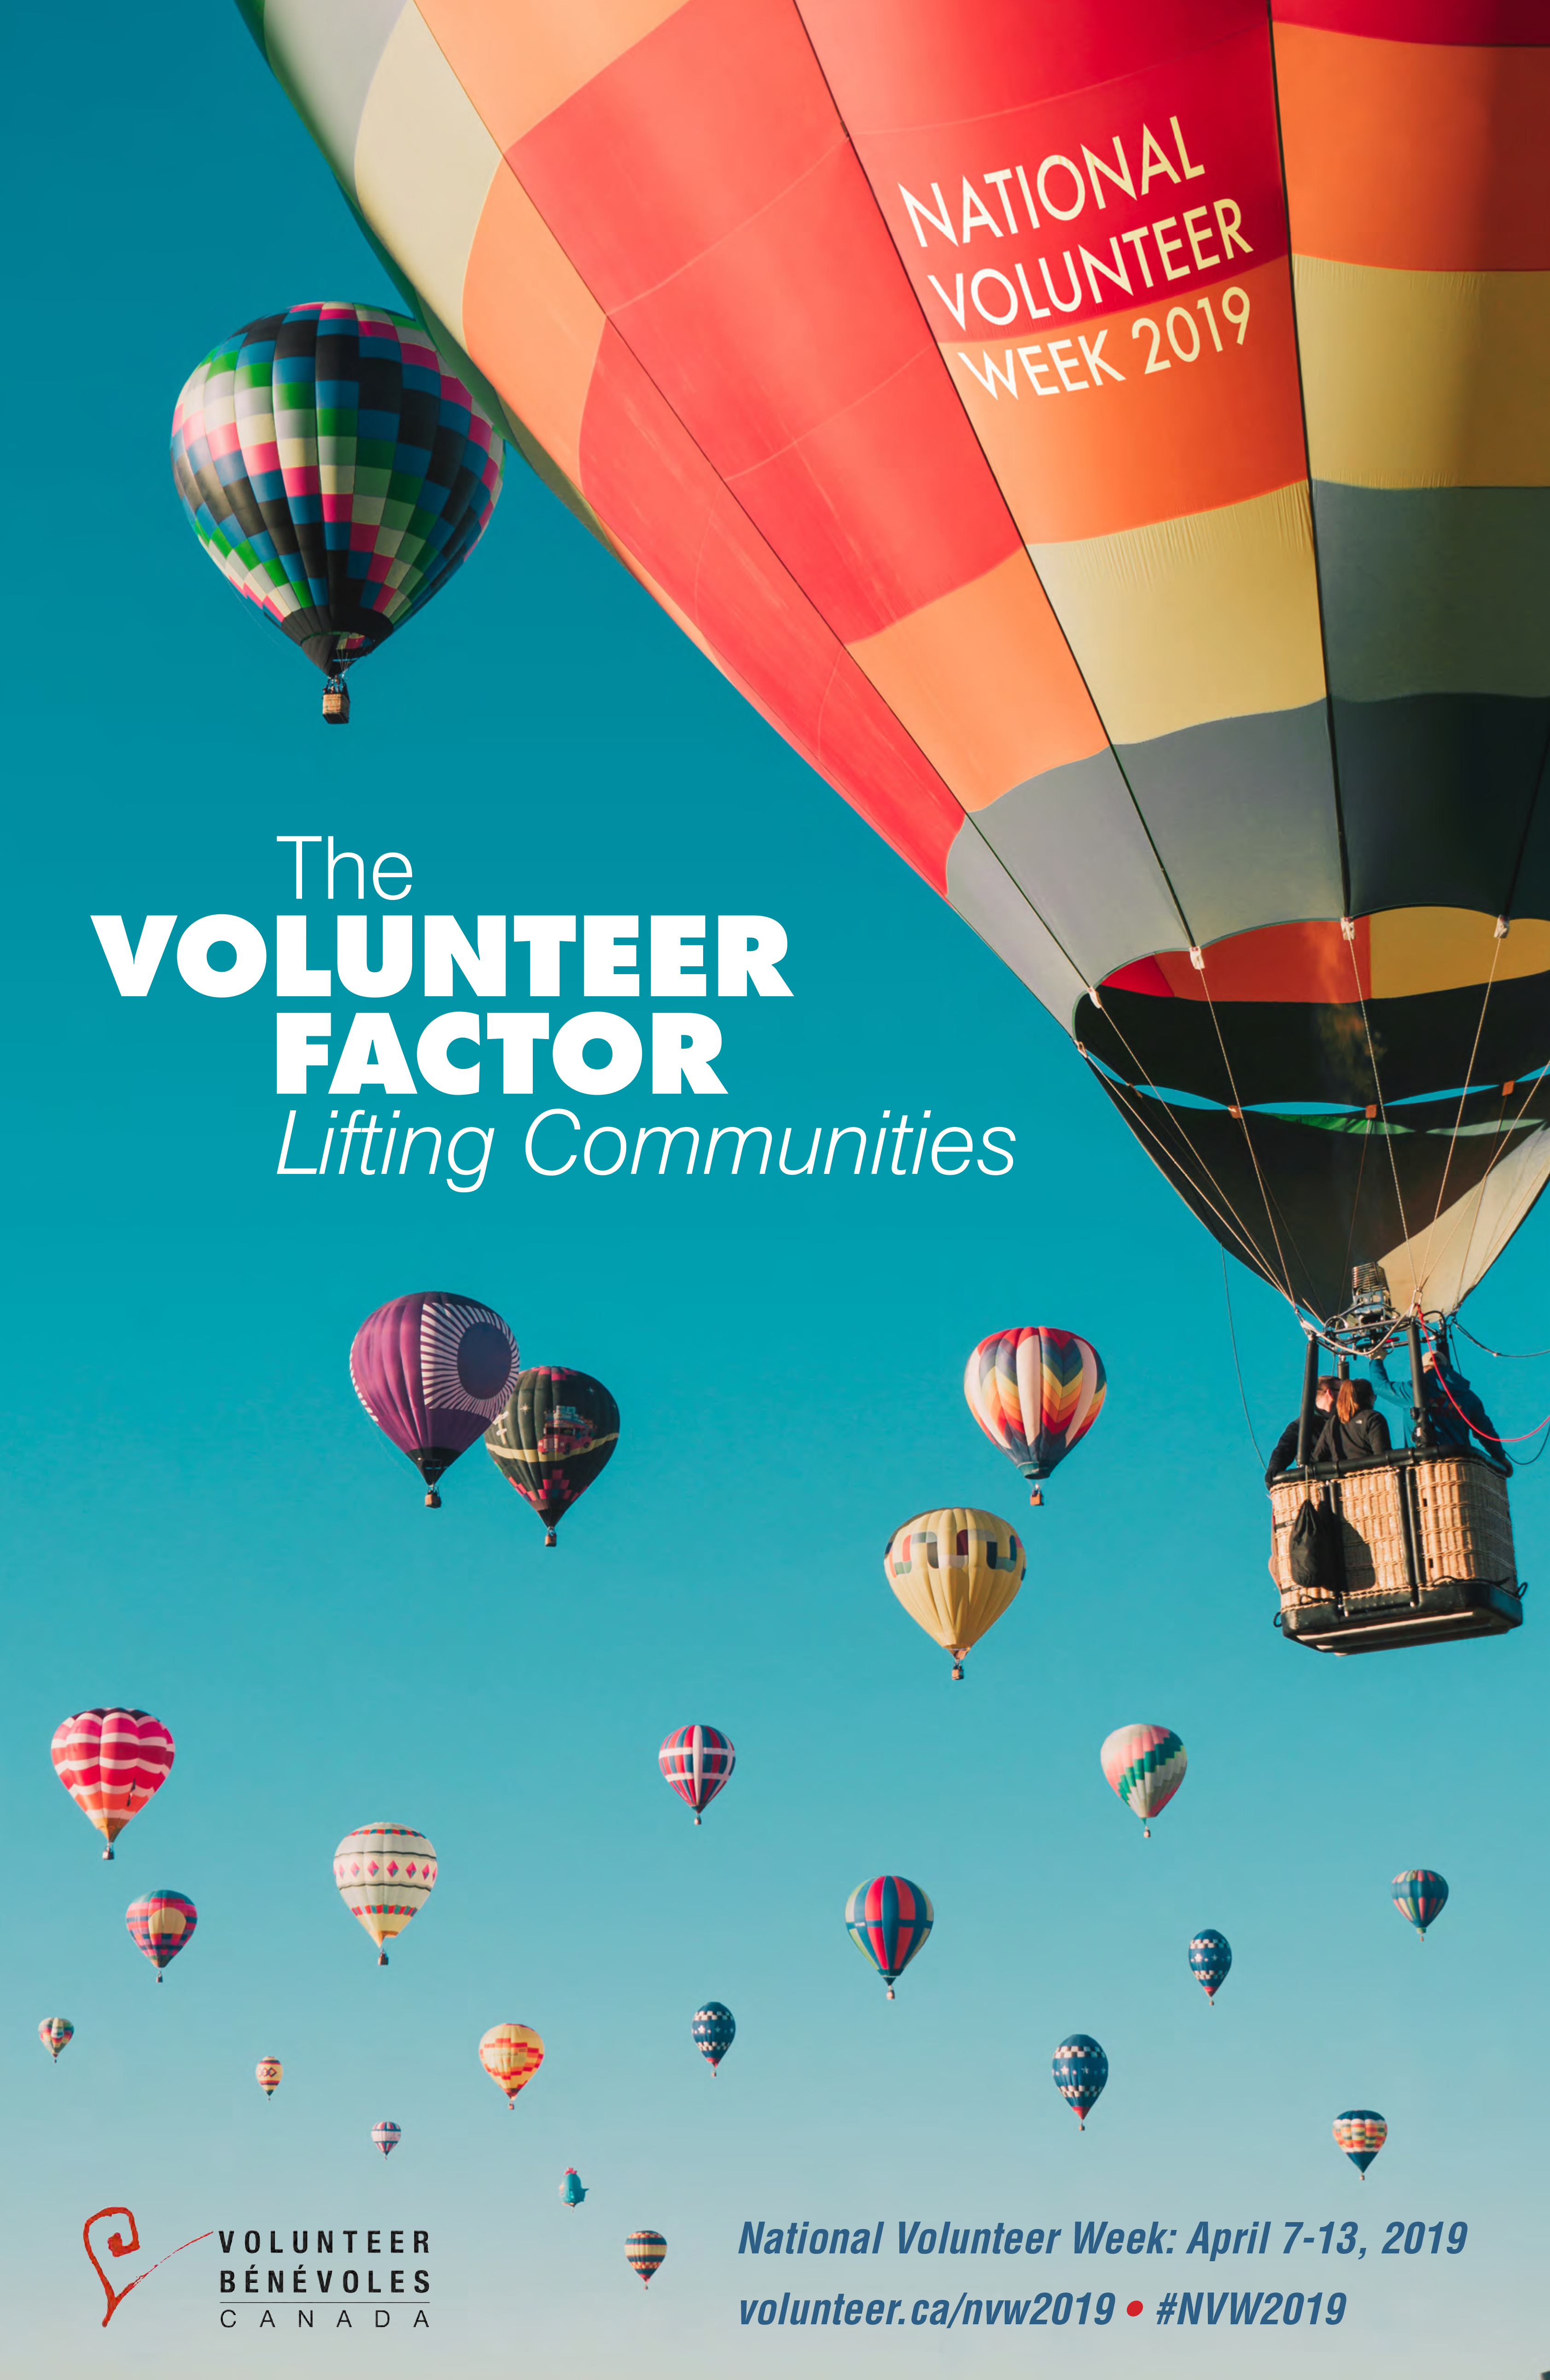 "Many hot air balloons in the sky, one large one says ""National Volunteer Week 2019"", theme in the middle ""The Volunteer Factor - Lifting Communities"""